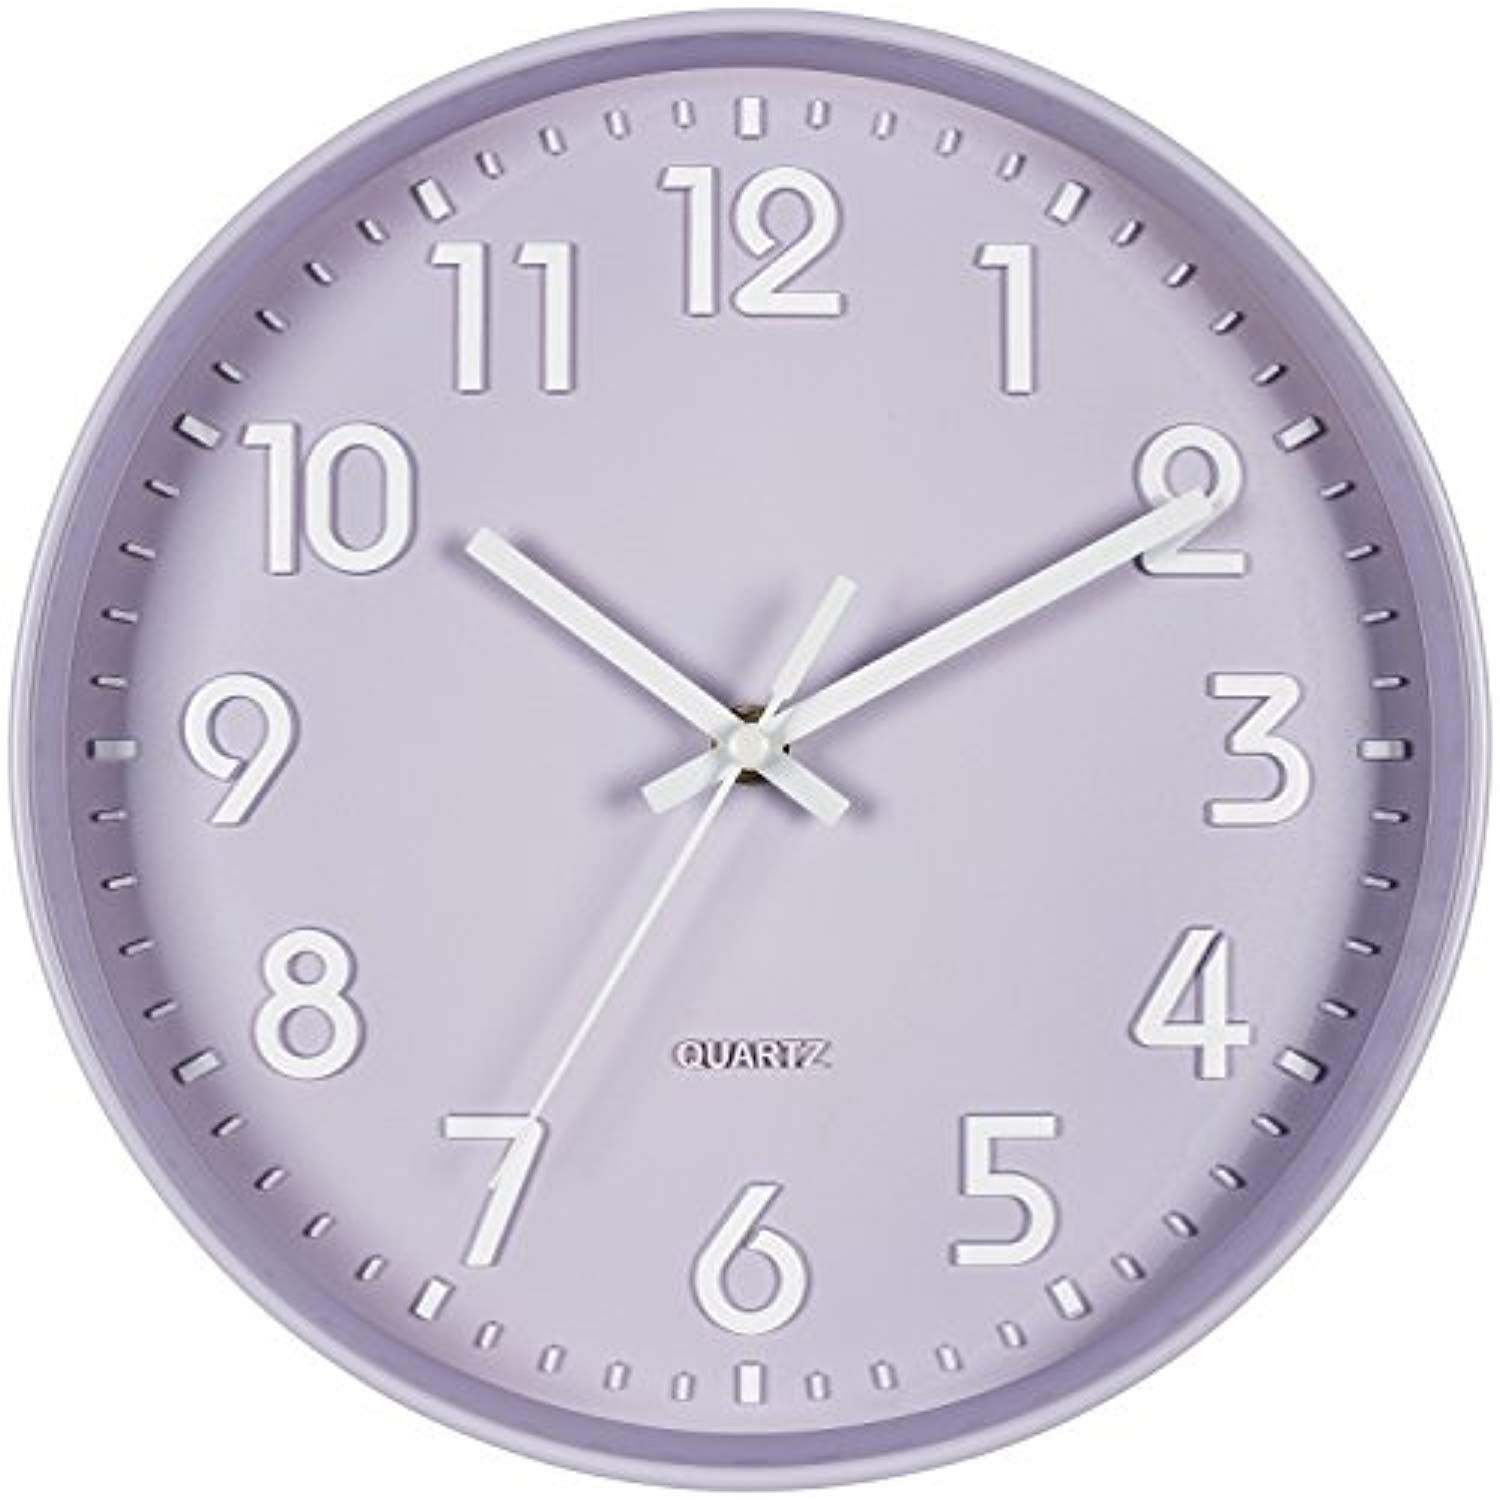 Bernhard Products Purple Wall Clock 10 Inch Silent Non Ticking Quality Quartz 3d Numbers Battery Operated Round P Purple Wall Clocks Purple Walls Wall Clock